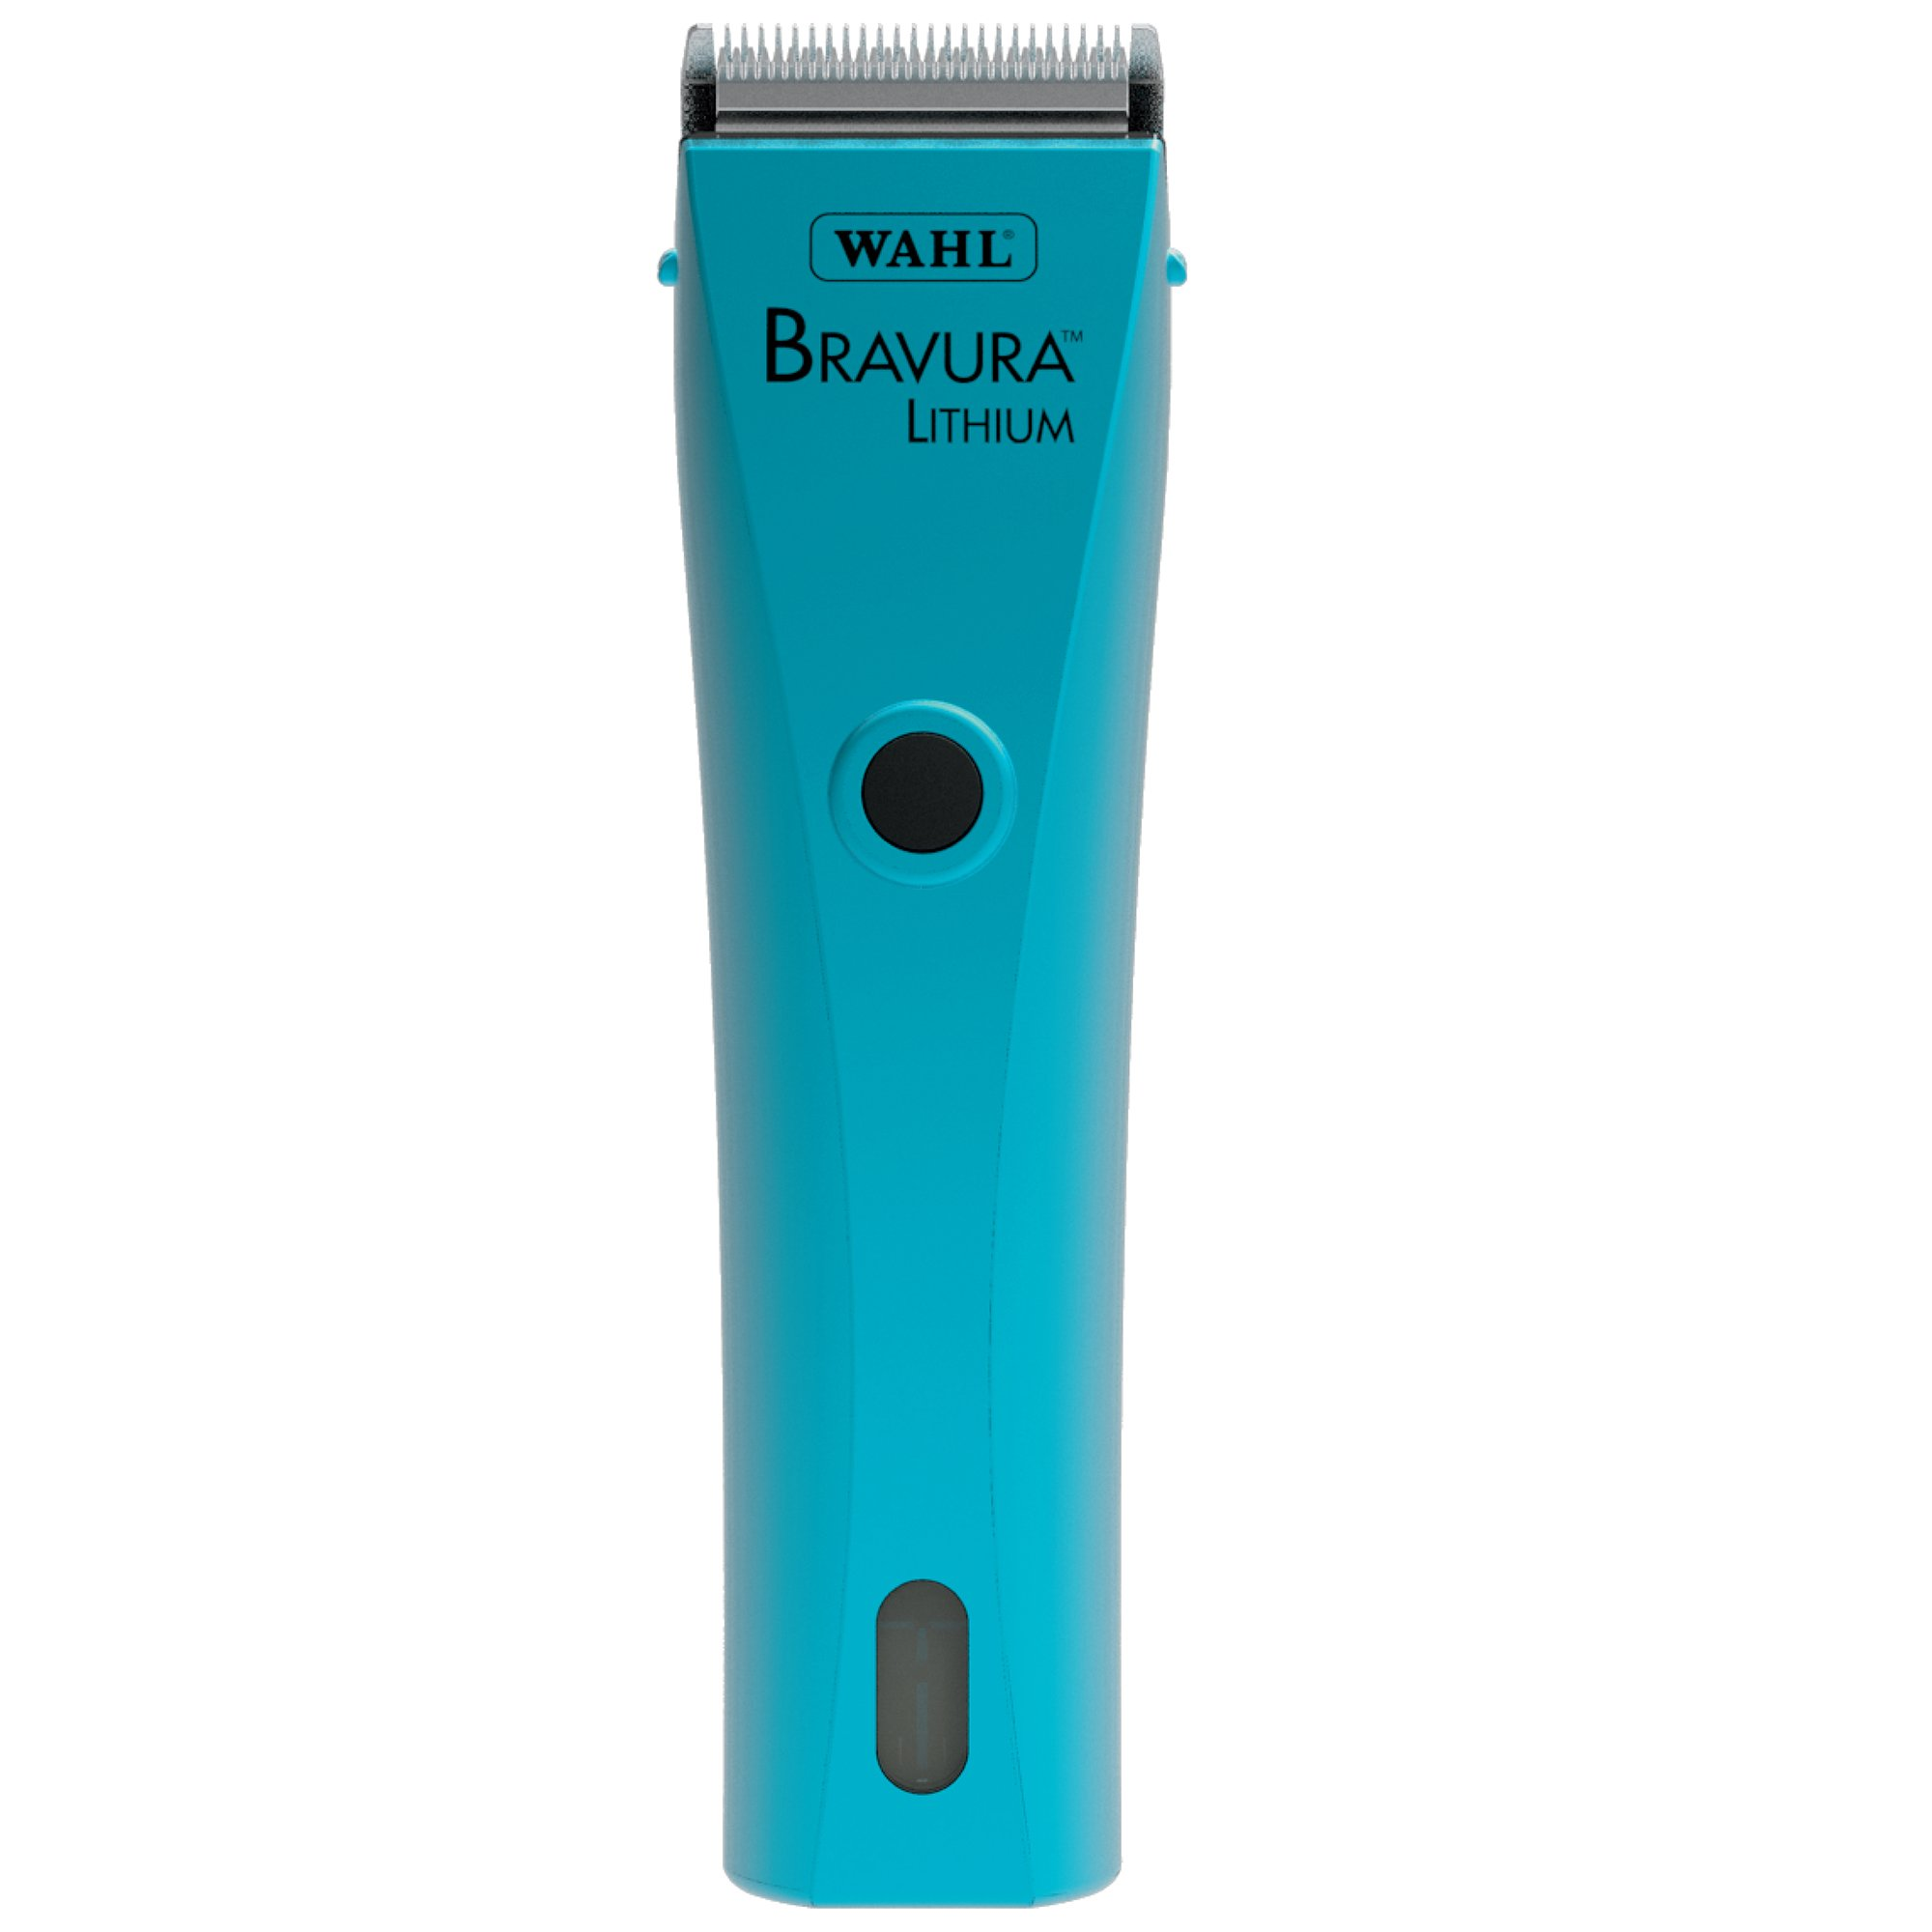 Wahl Professional Animal Bravura Pet, Dog, Cat, and Horse Corded / Cordless Clipper Kit, Turquoise (#41870-0438) by Wahl Professional Animal